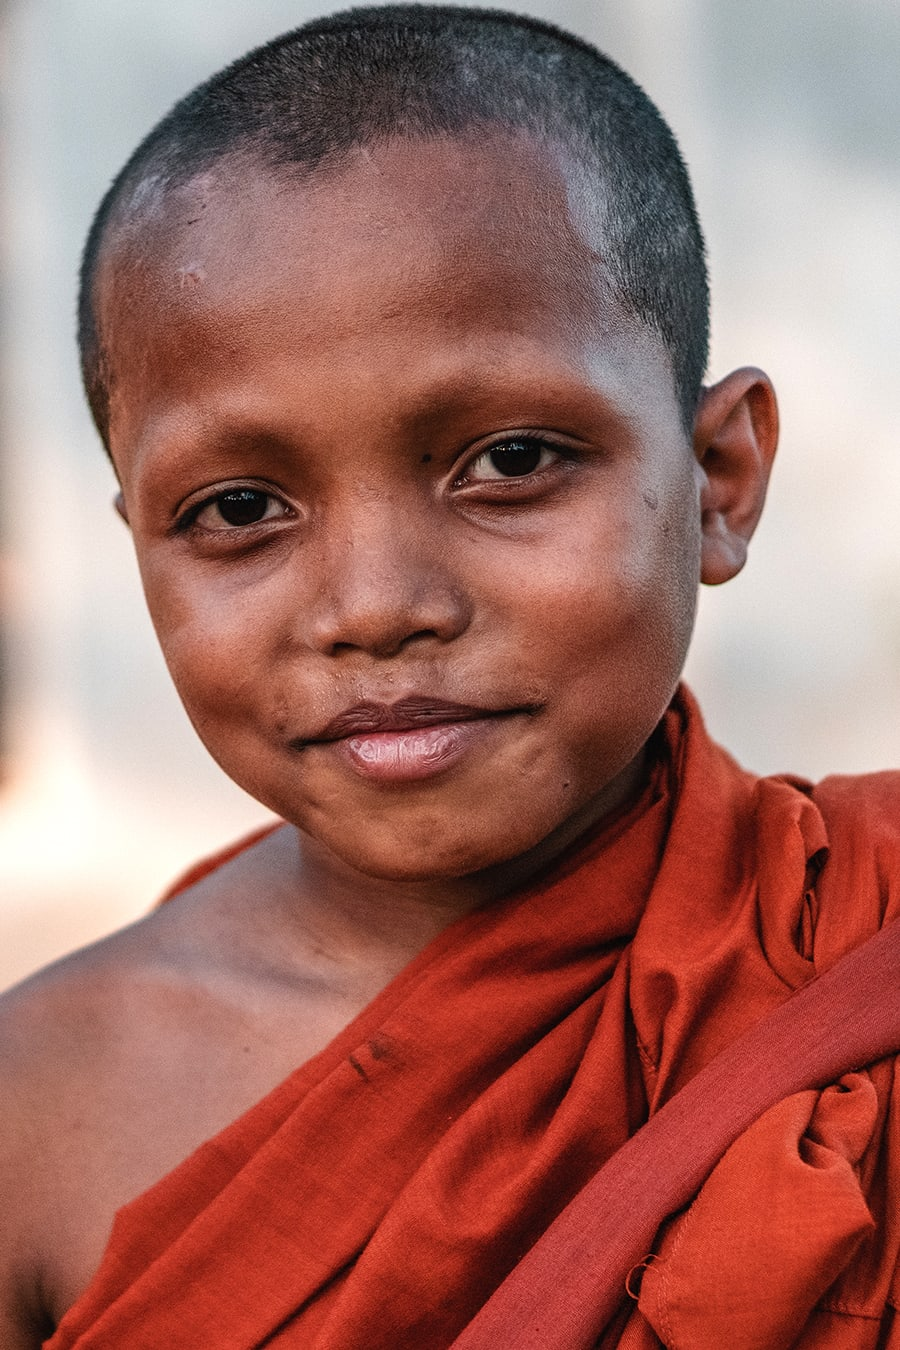 Novice monk in Siem Reap, Cambodia.